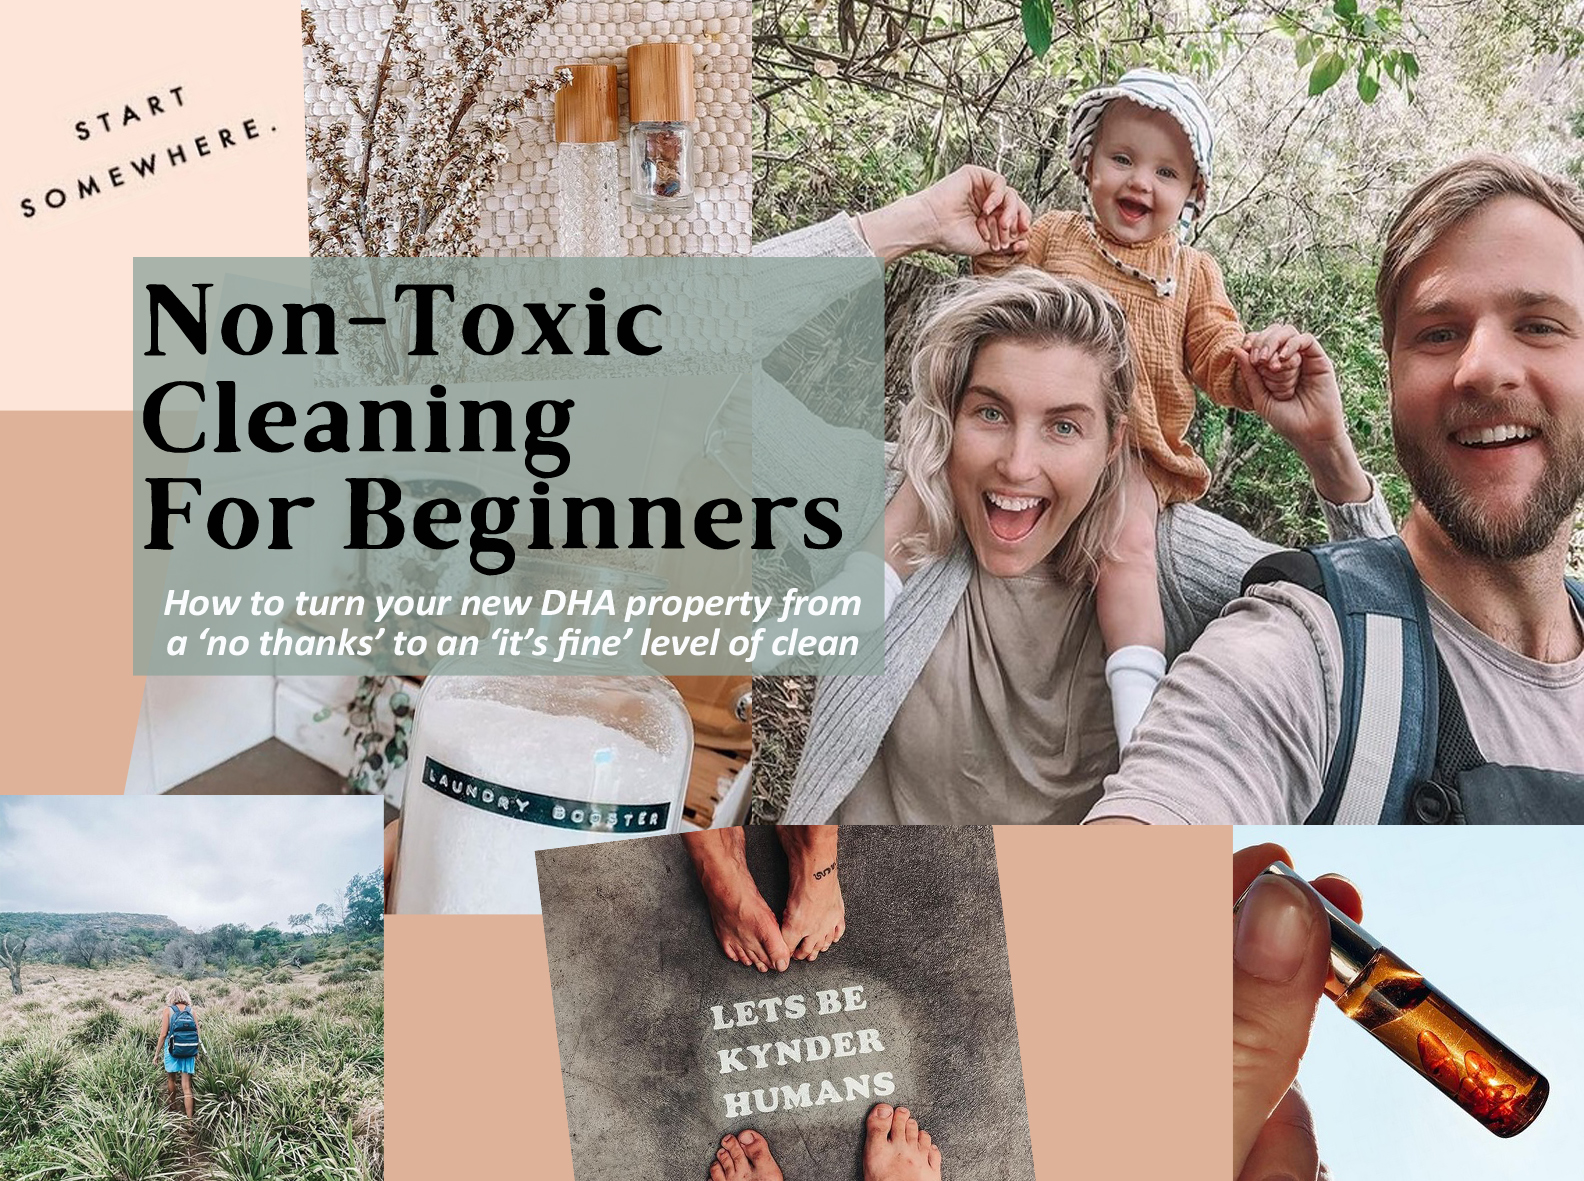 To tell military spouses about some easy non toxic cleaning recipes